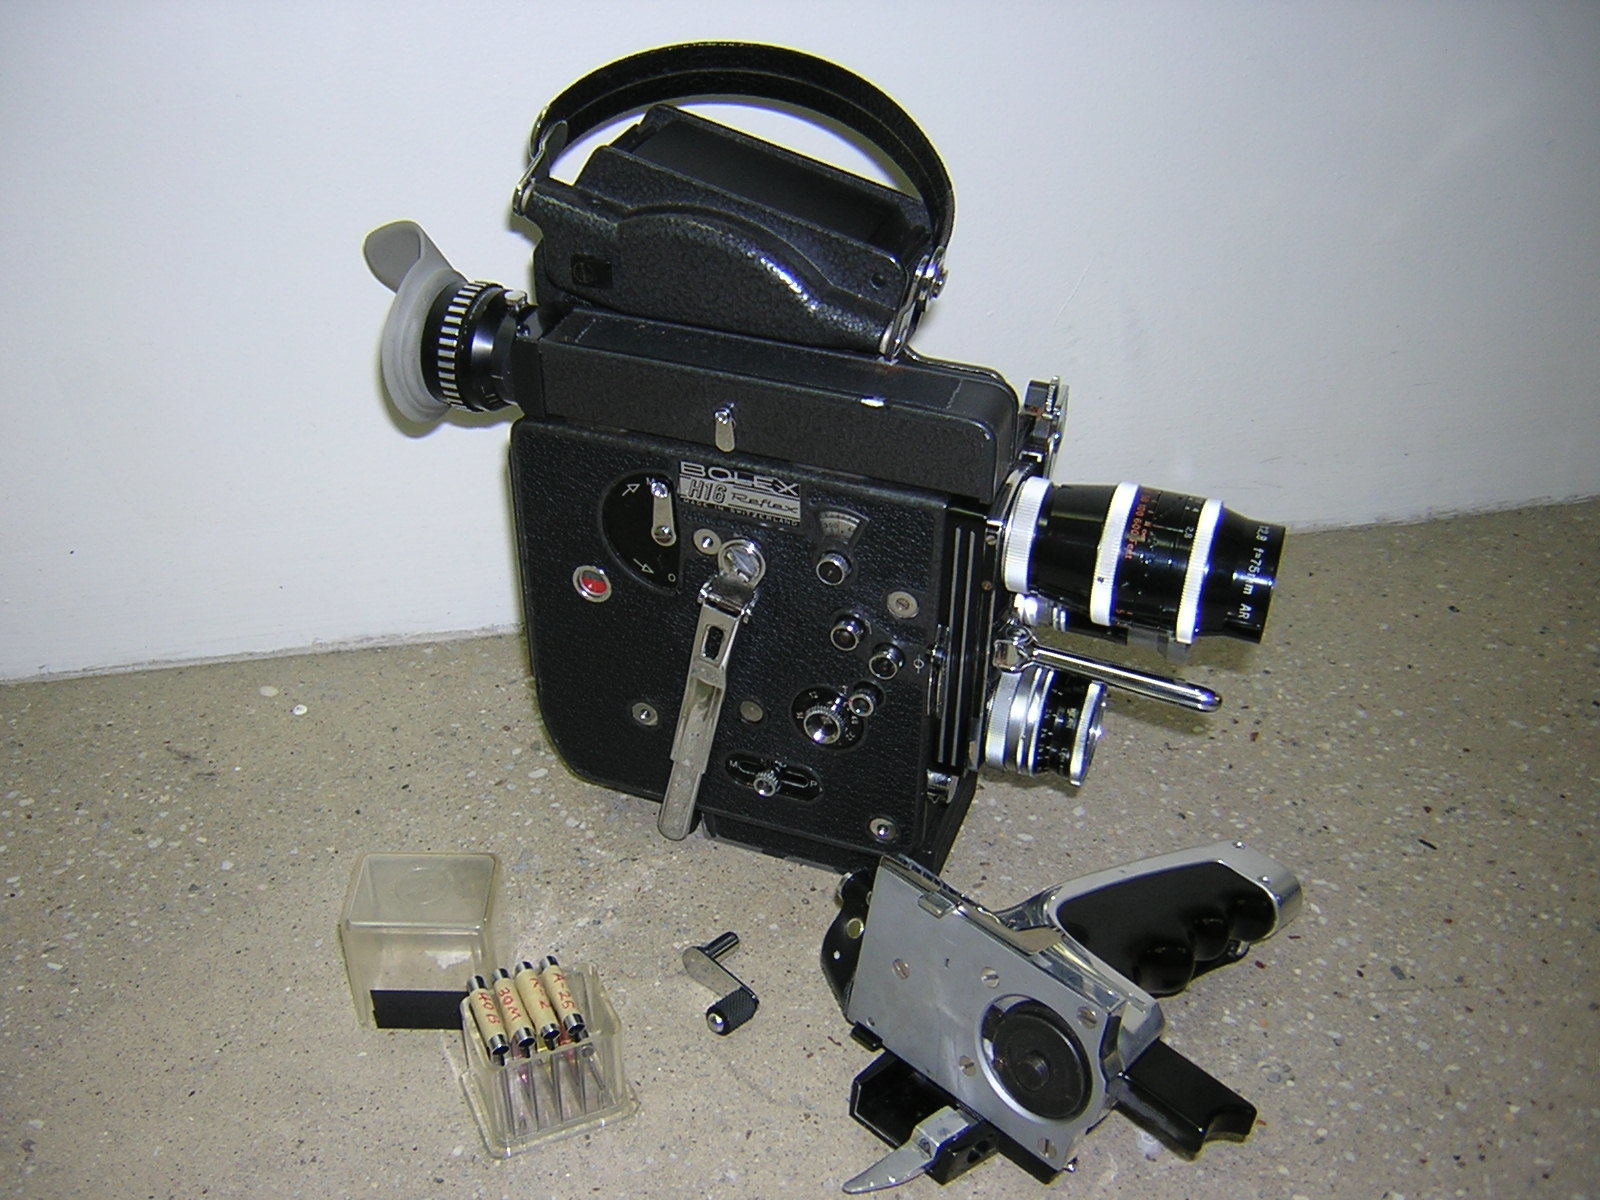 Rent a Bolex 16mm Bolex H-16 Rex 5 with 3 prime lenses, Best Prices |  ShareGrid New York